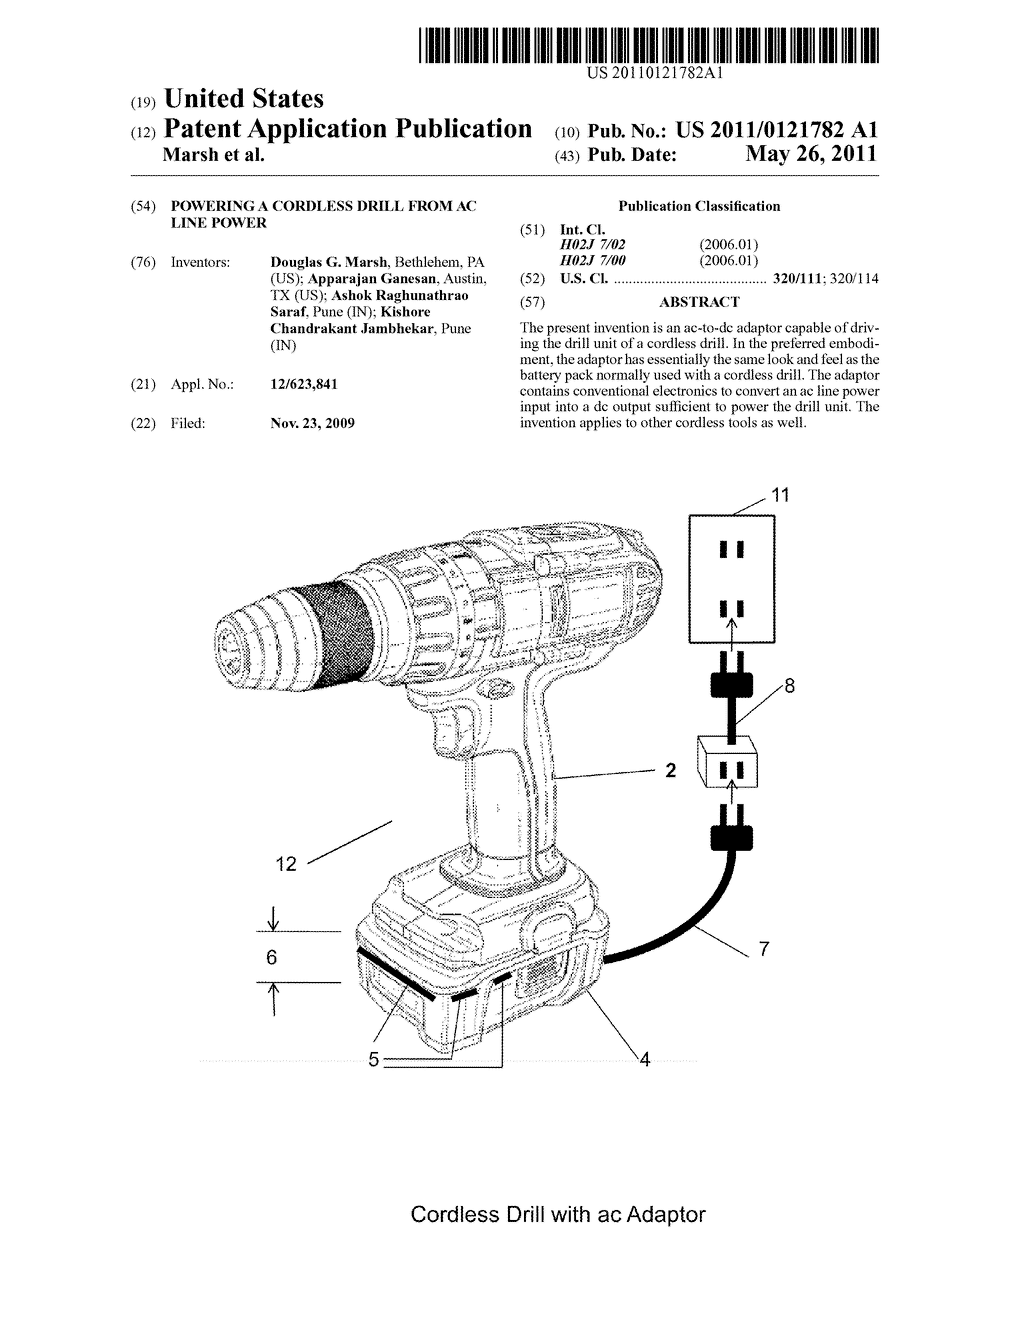 hight resolution of powering a cordless drill from ac line power diagram schematic cordless drill diagram cordless drill diagram